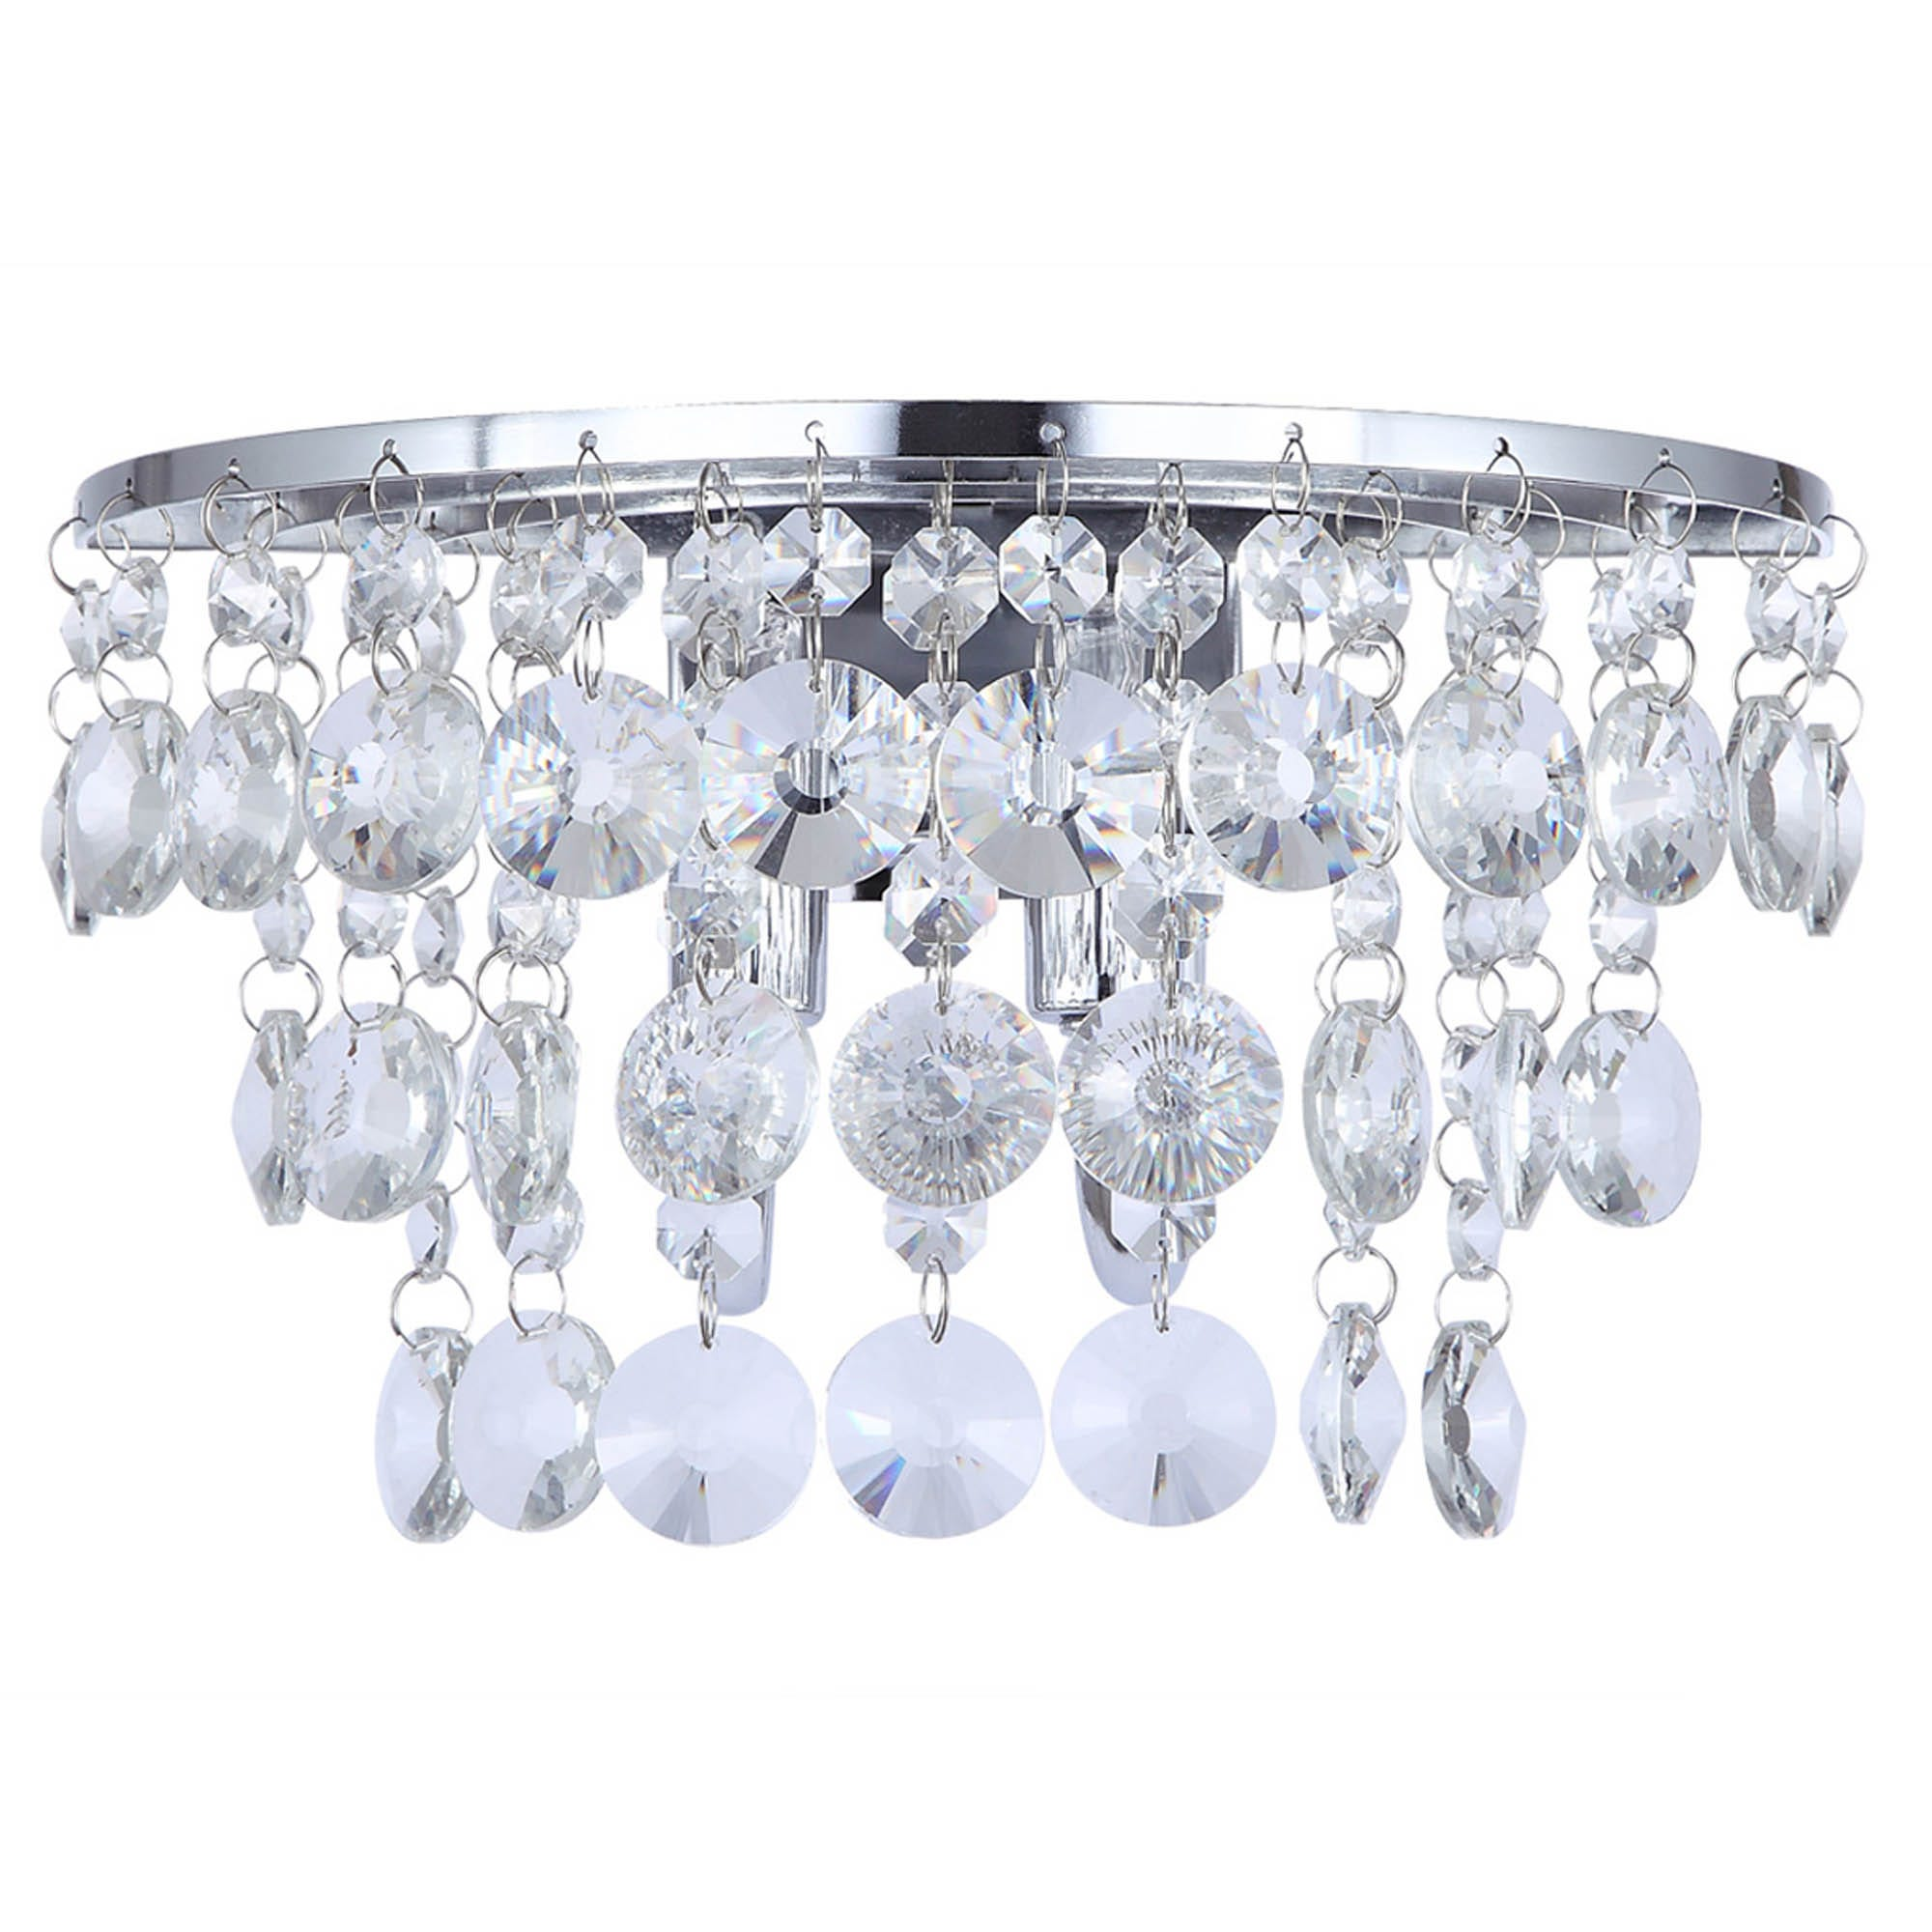 Image of Diego Chrome Wall Light